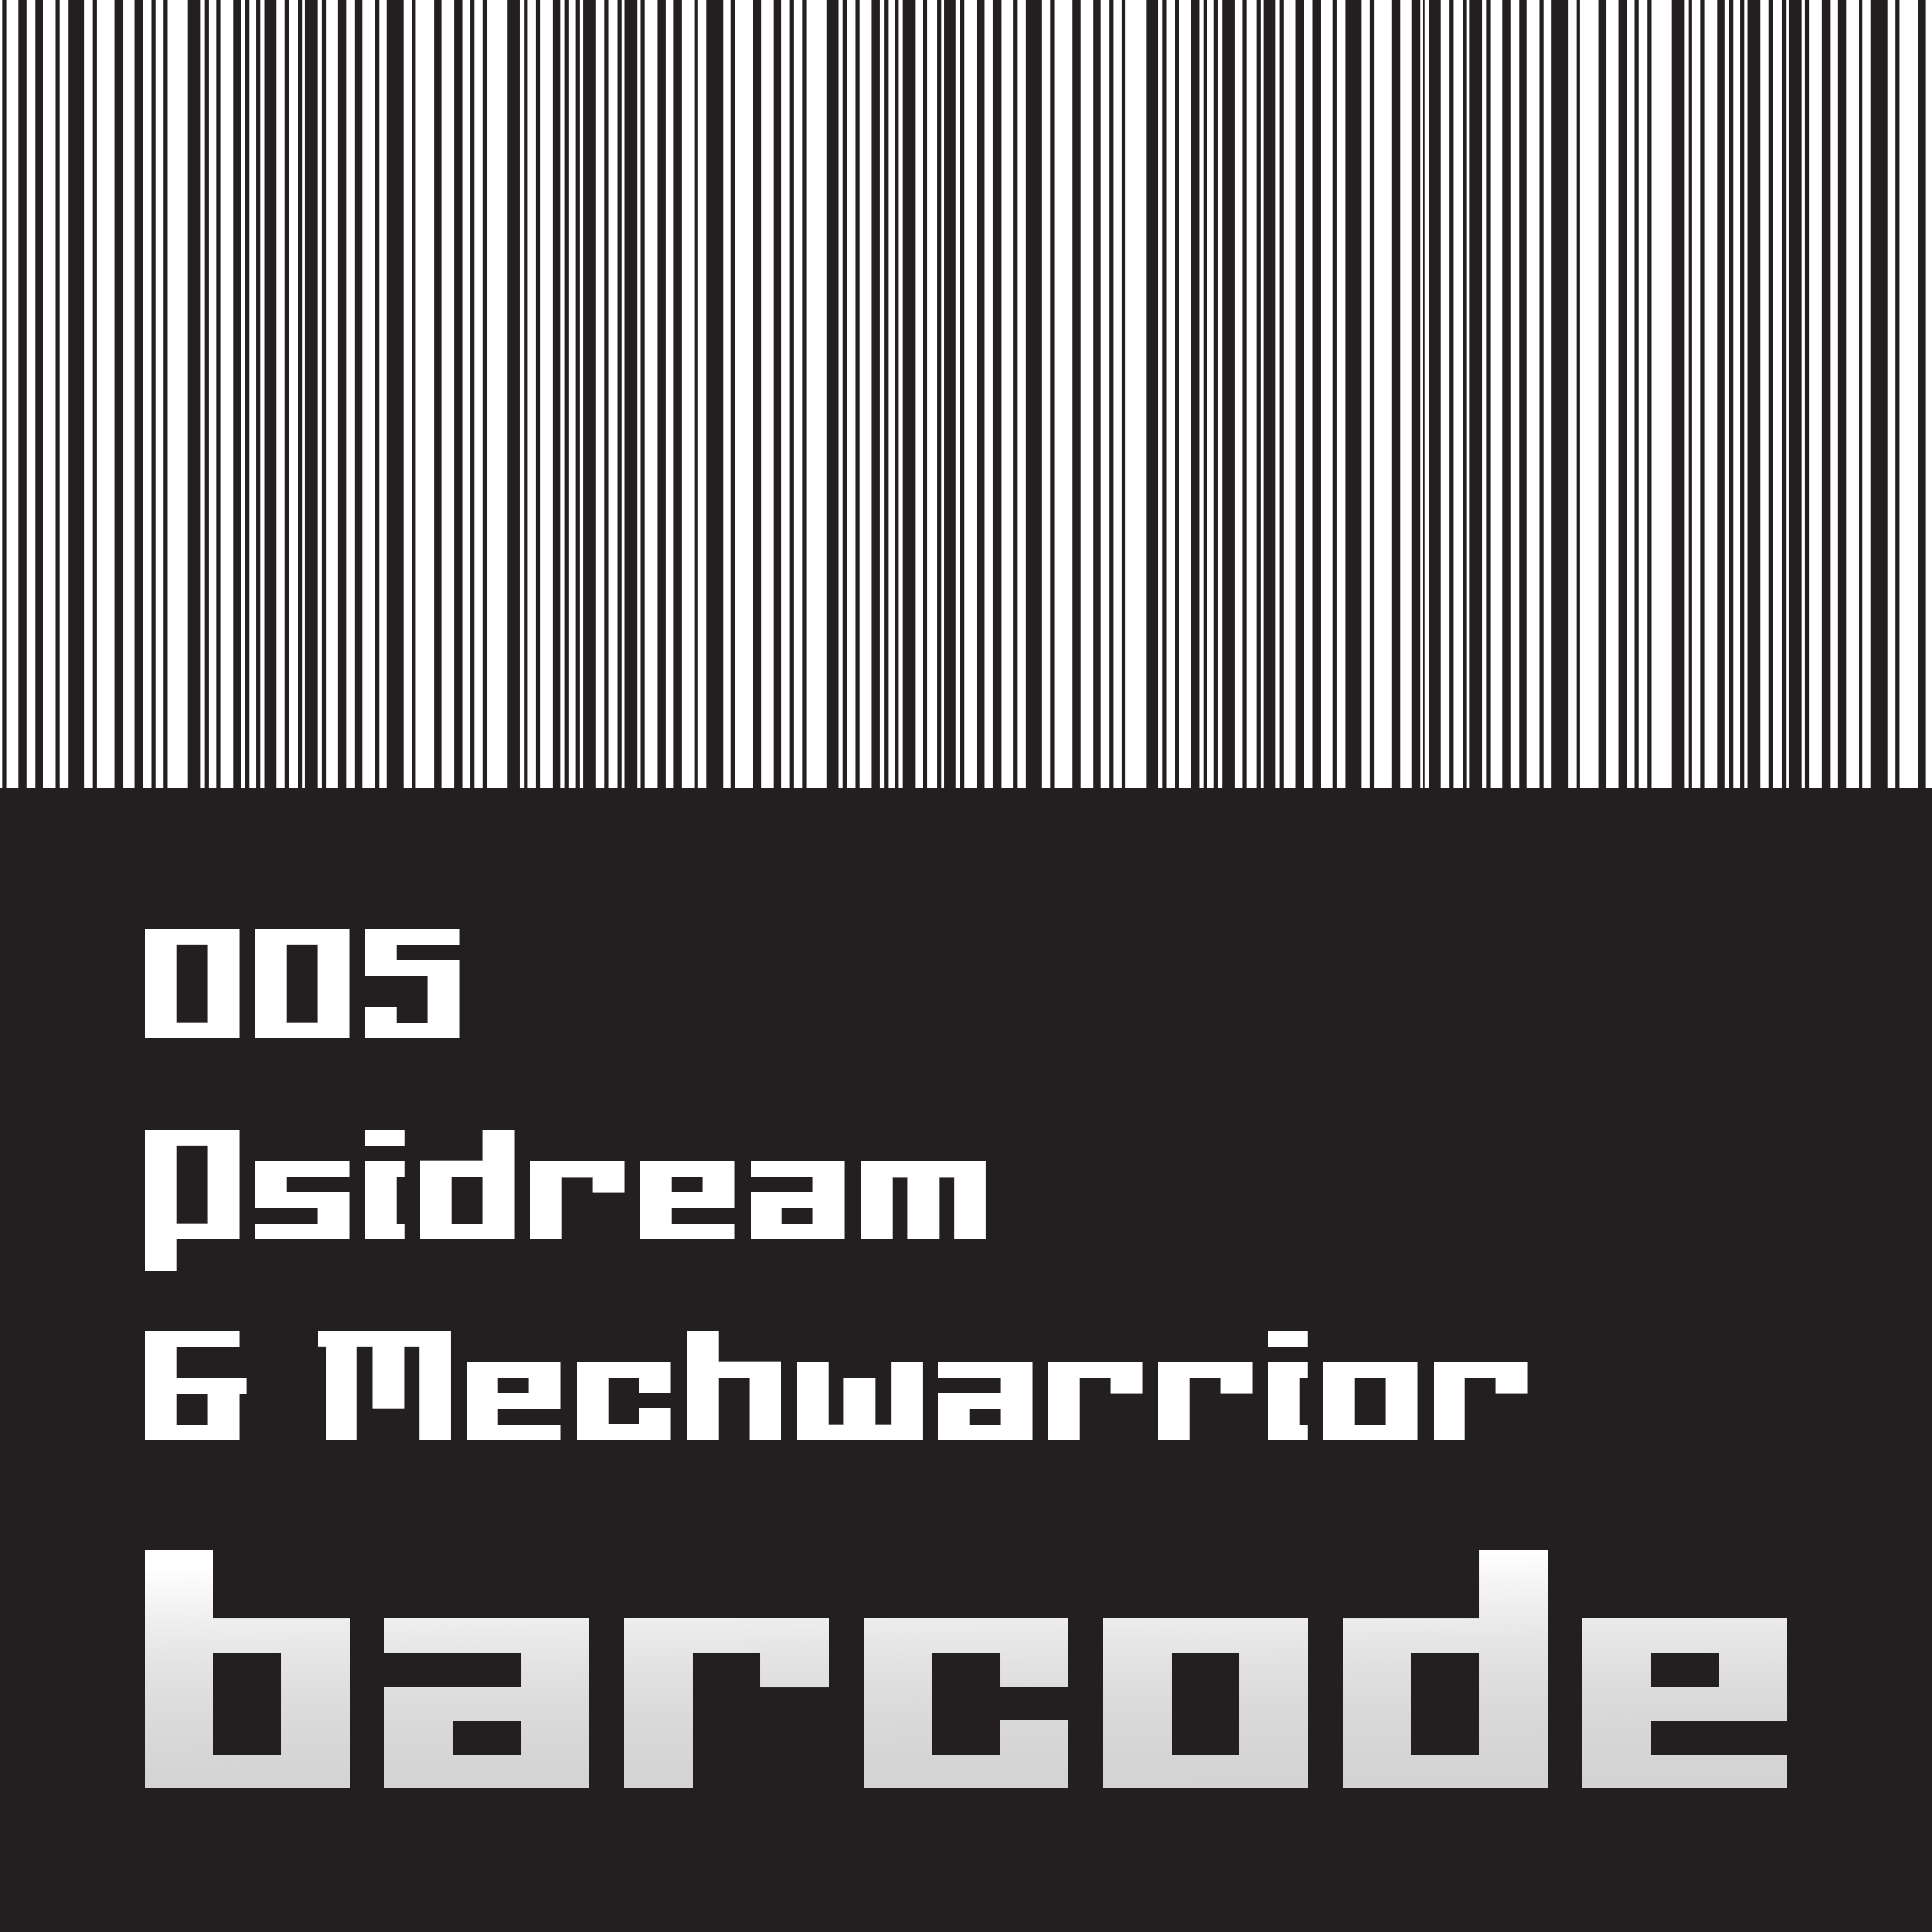 Psidream & Mechwarrior - Stitches / Last Walk